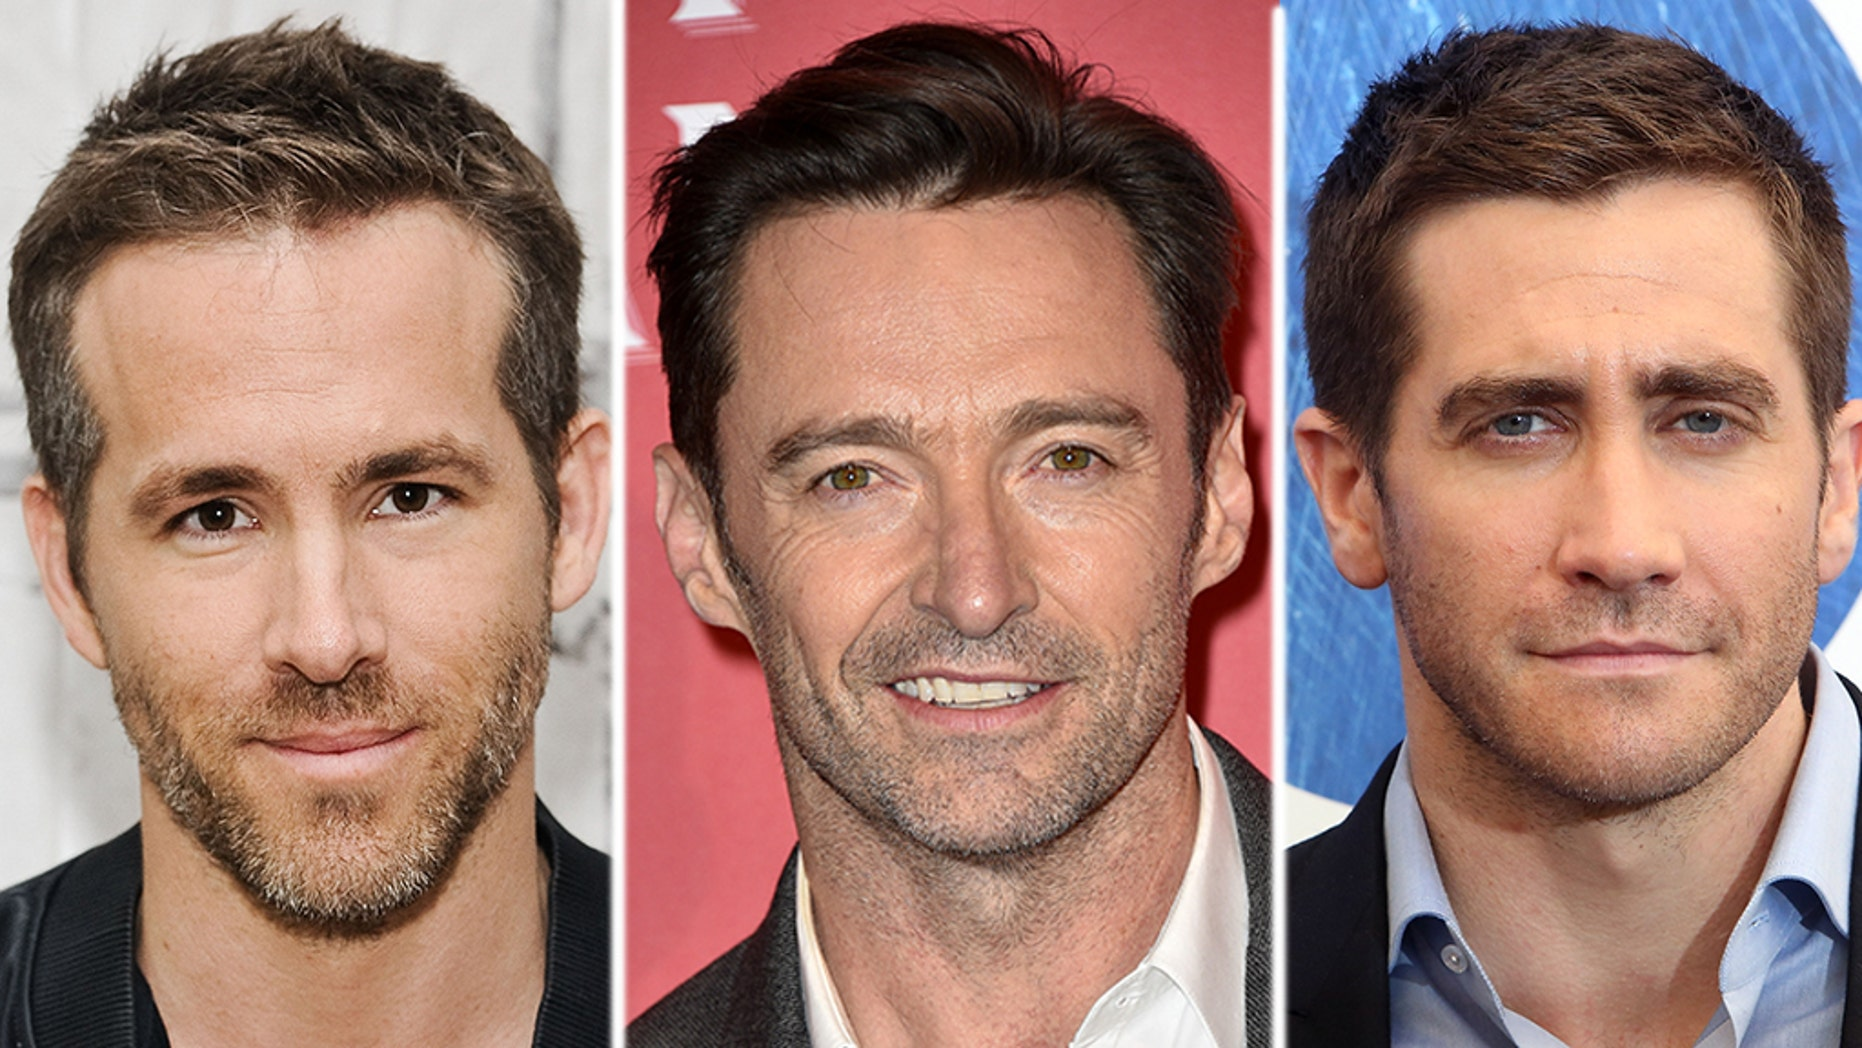 Actor Ryan Reynolds was recently the subject of an epic prank carried out by fellow actors Jake Gyllenhaal and Hugh Jackman.